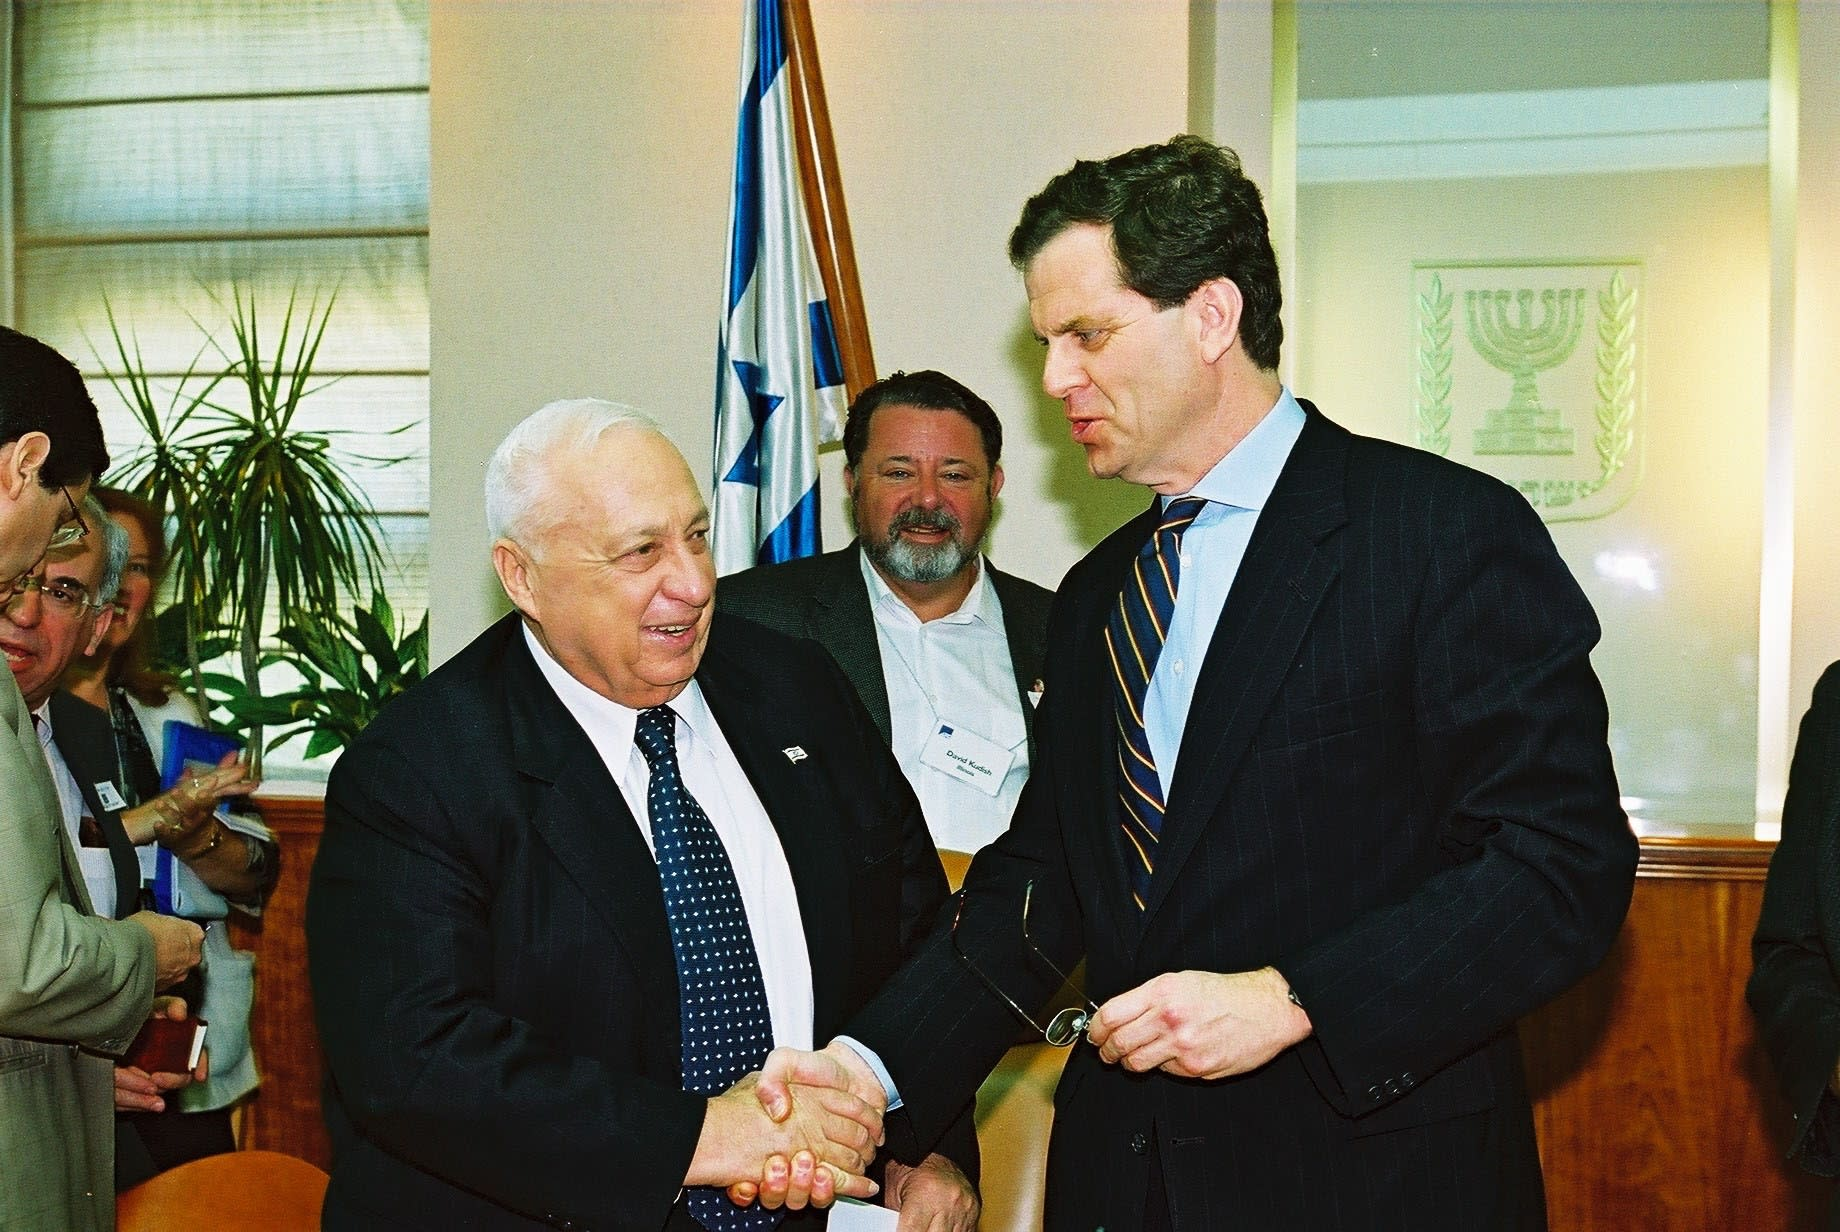 AJC CEO David Harris shakes hands with Ariel Sharon